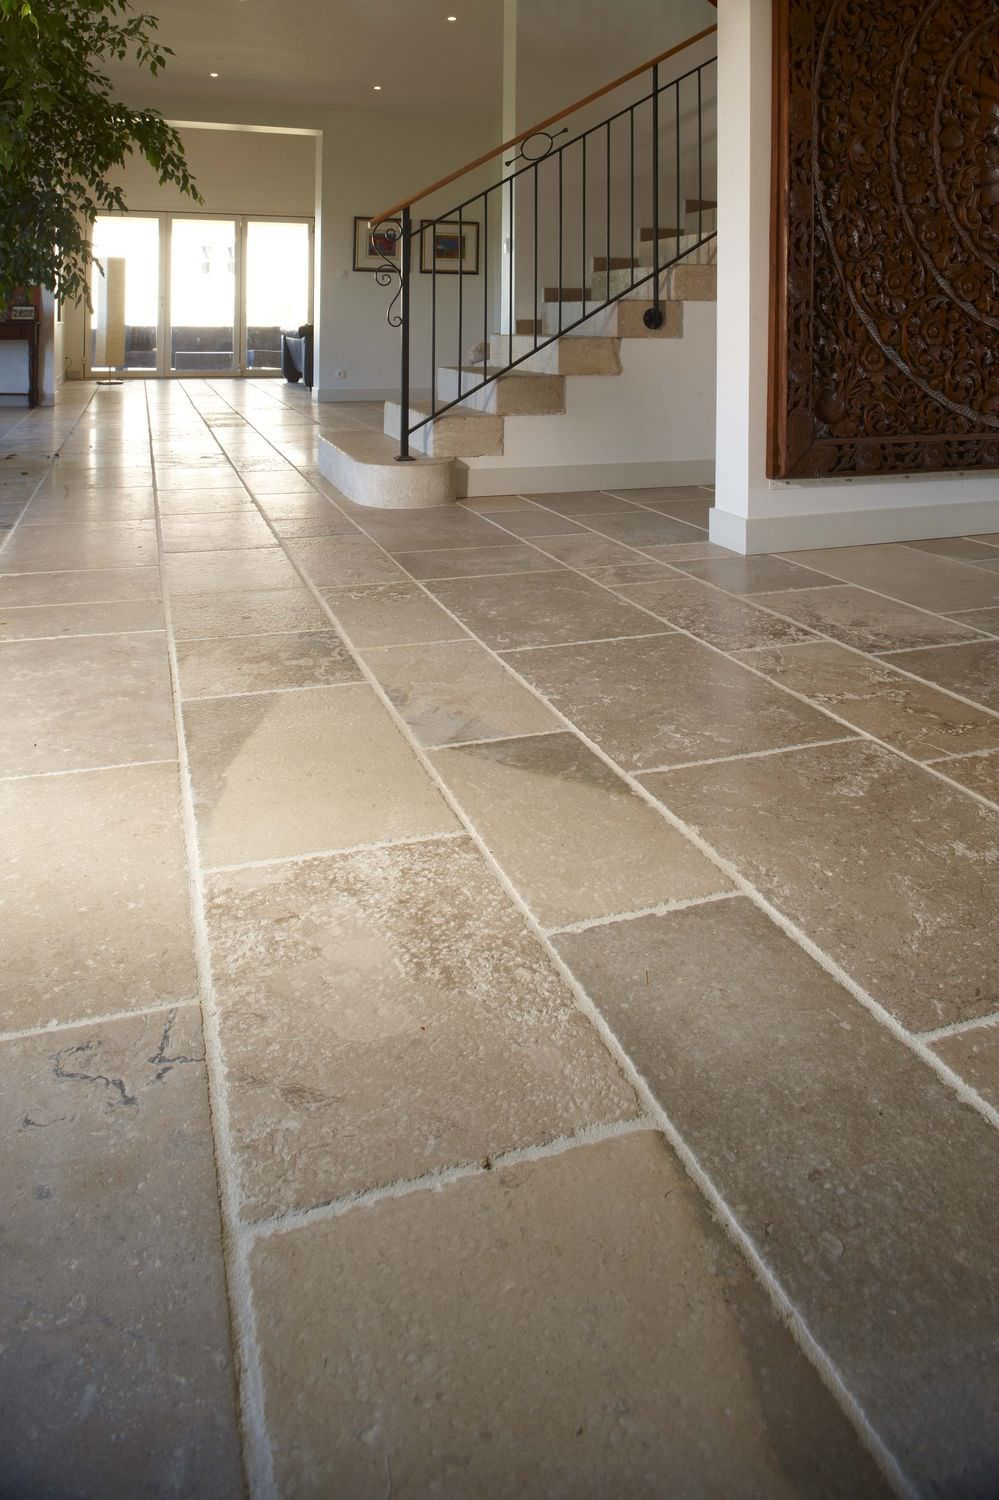 Natural stone tiles for kitchen floors httpnextsoft21 natural stone tiles for kitchen floors dailygadgetfo Choice Image